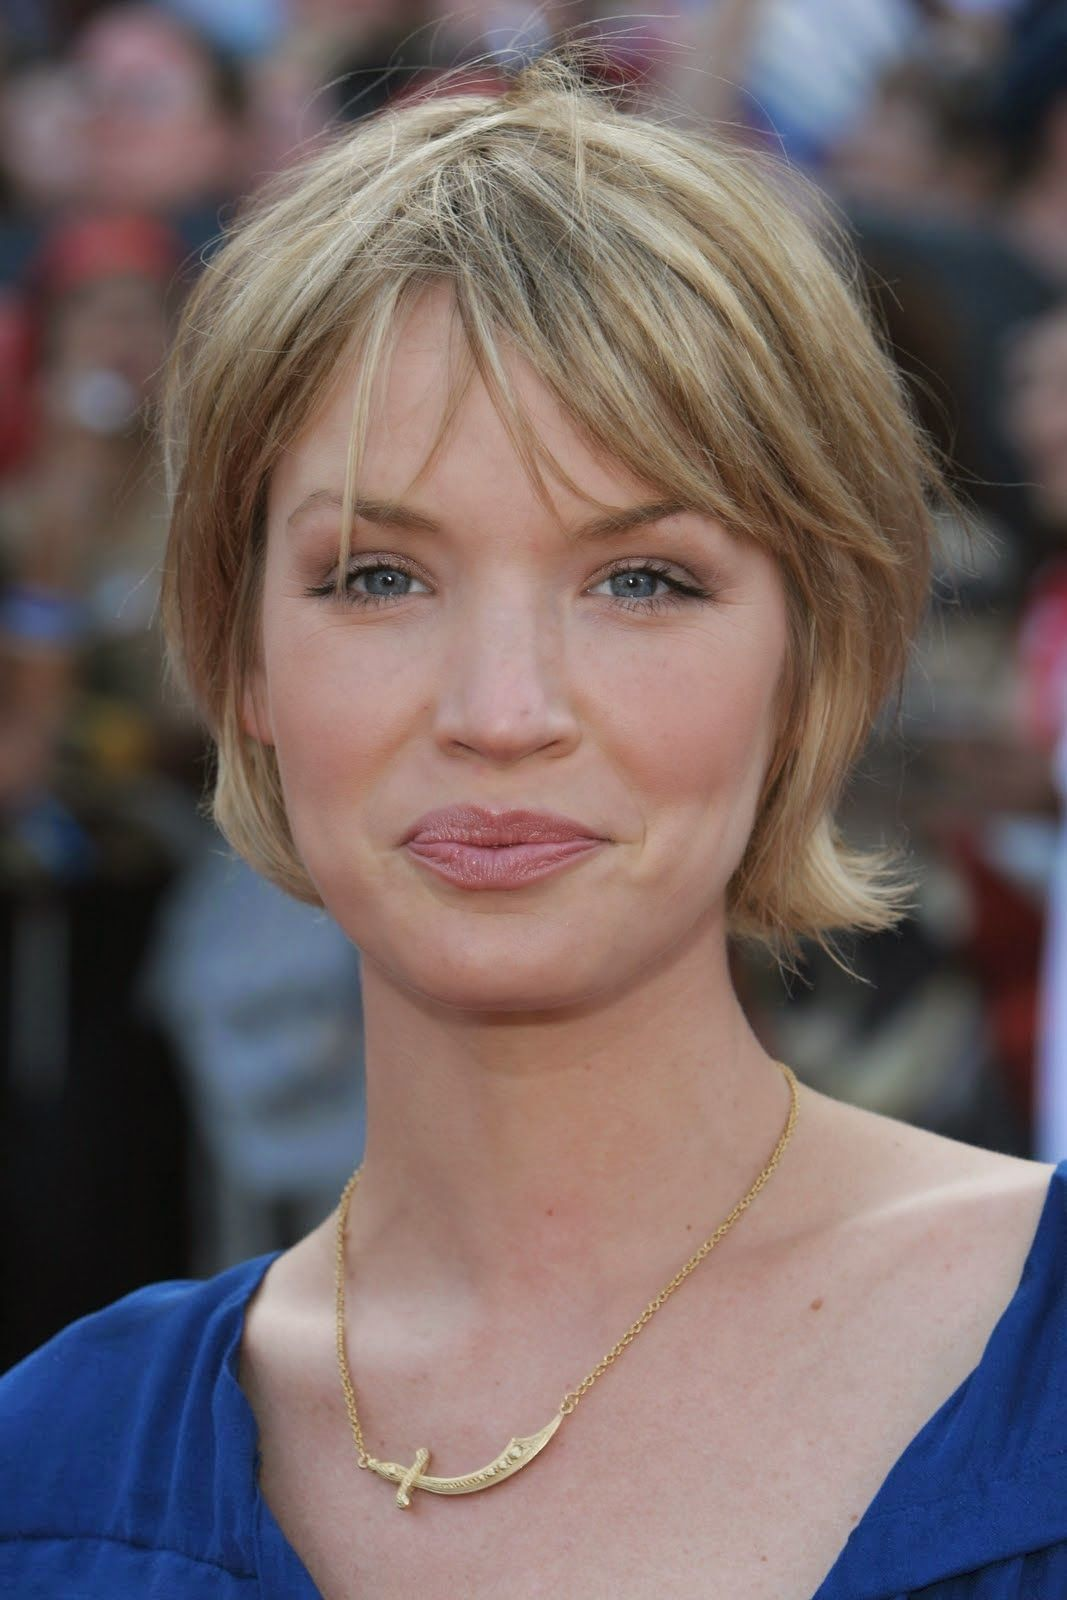 Short Hairstyles Women Over 50 Round Faces Hairstyles for Women Over 50